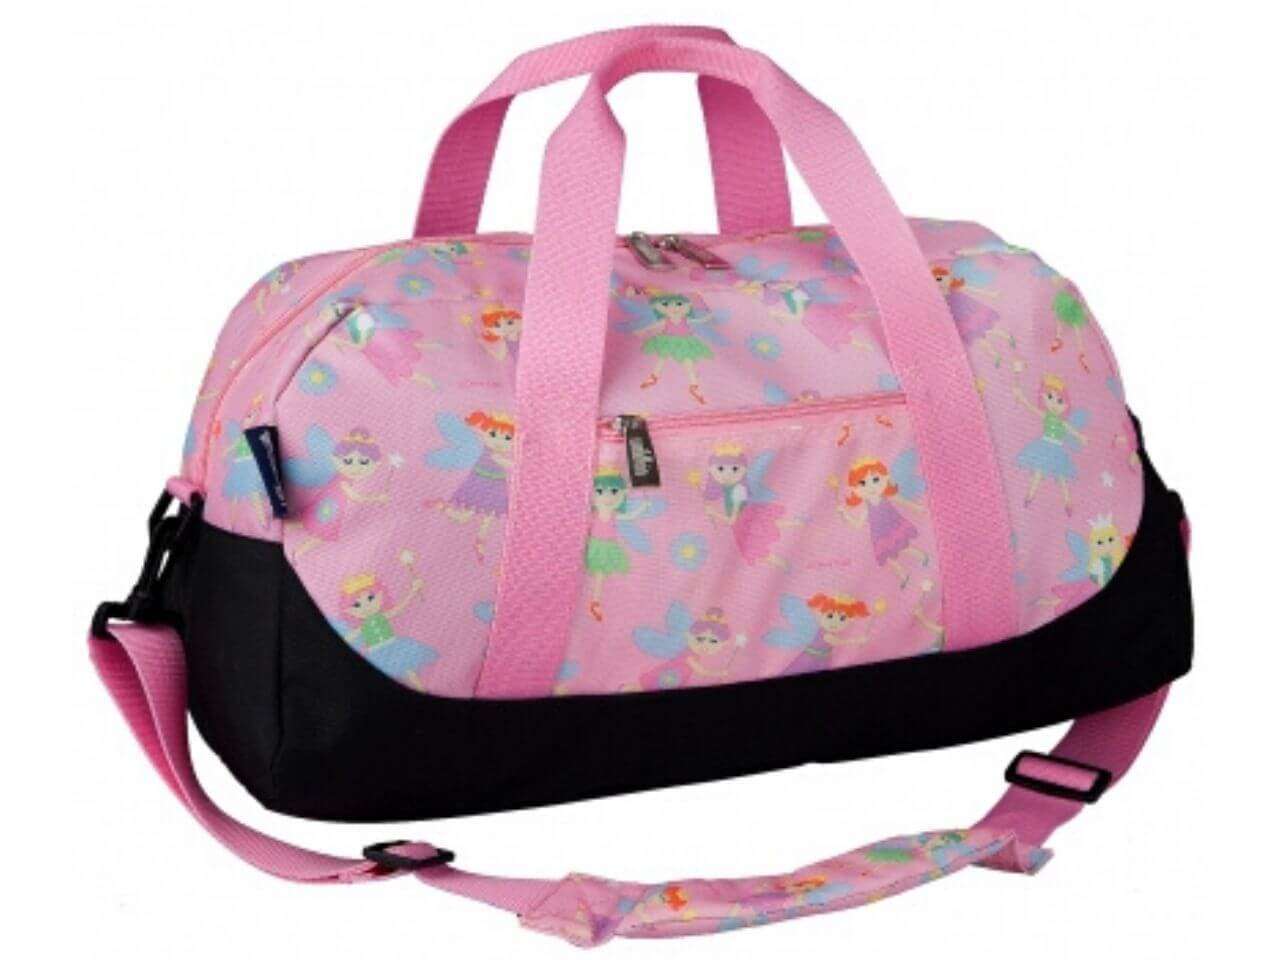 Fairy Princess - Kids Duffel Bag